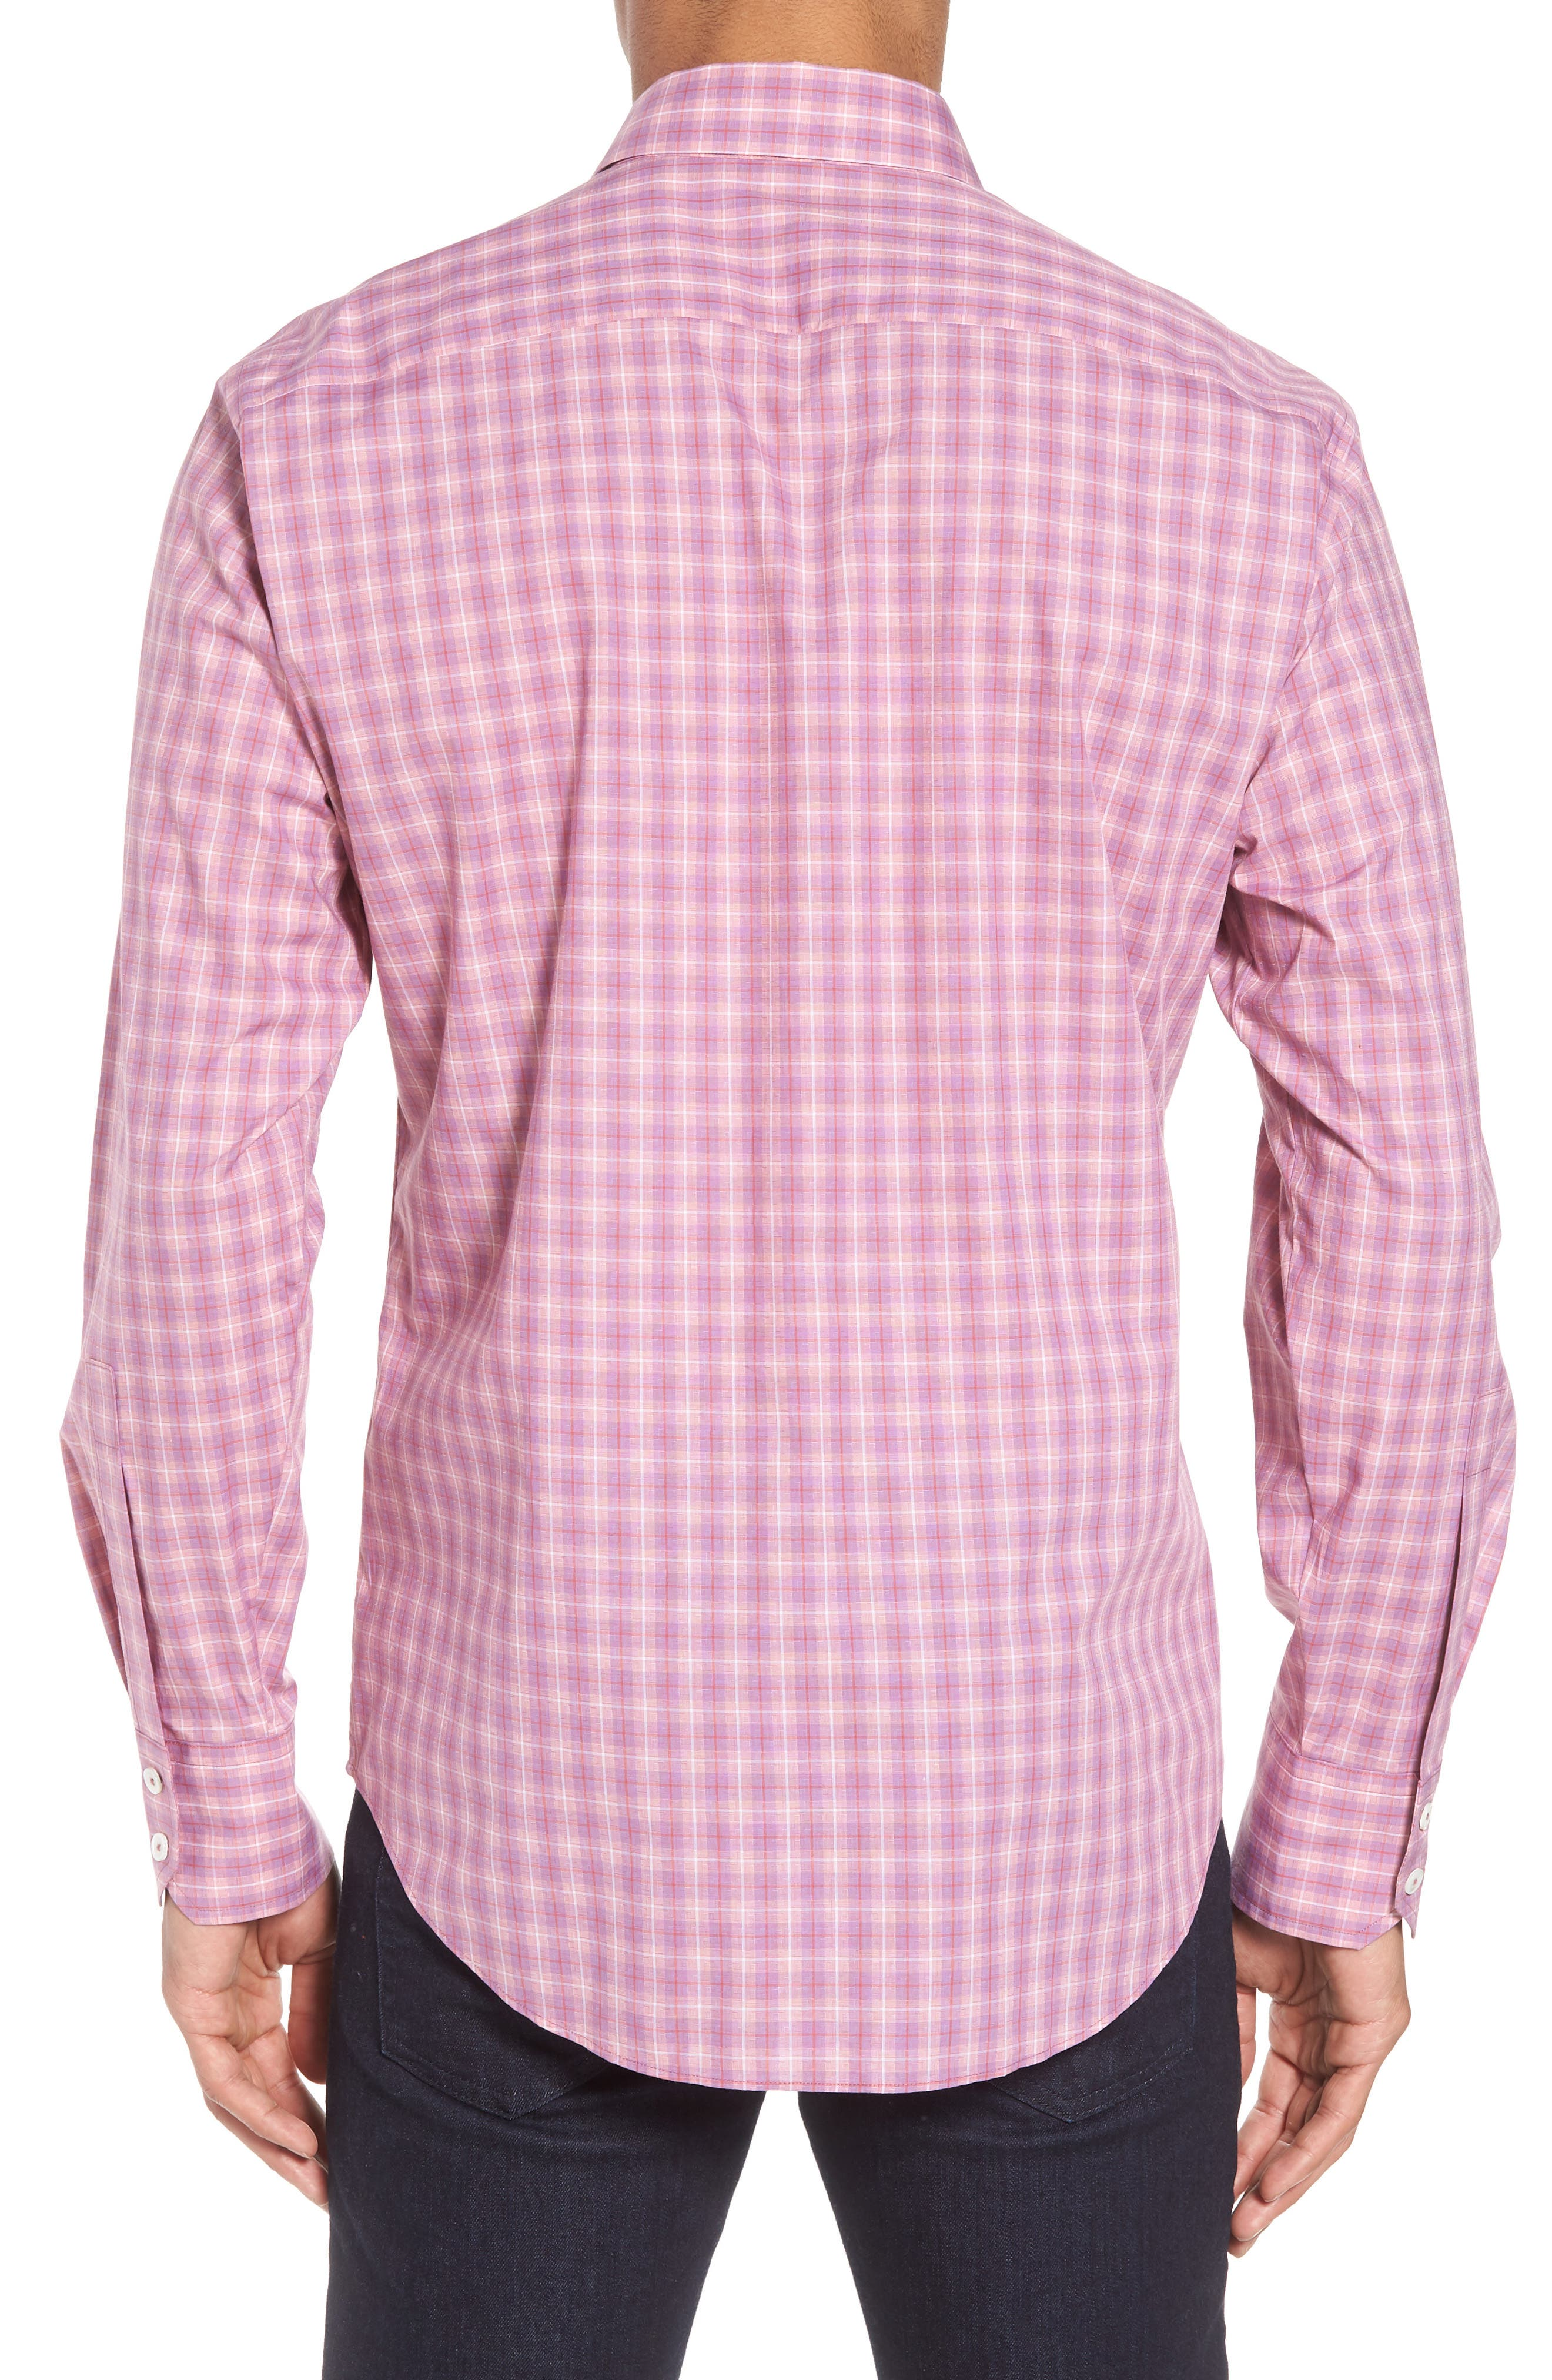 Duran Regular Fit Sport Shirt,                             Alternate thumbnail 2, color,                             650